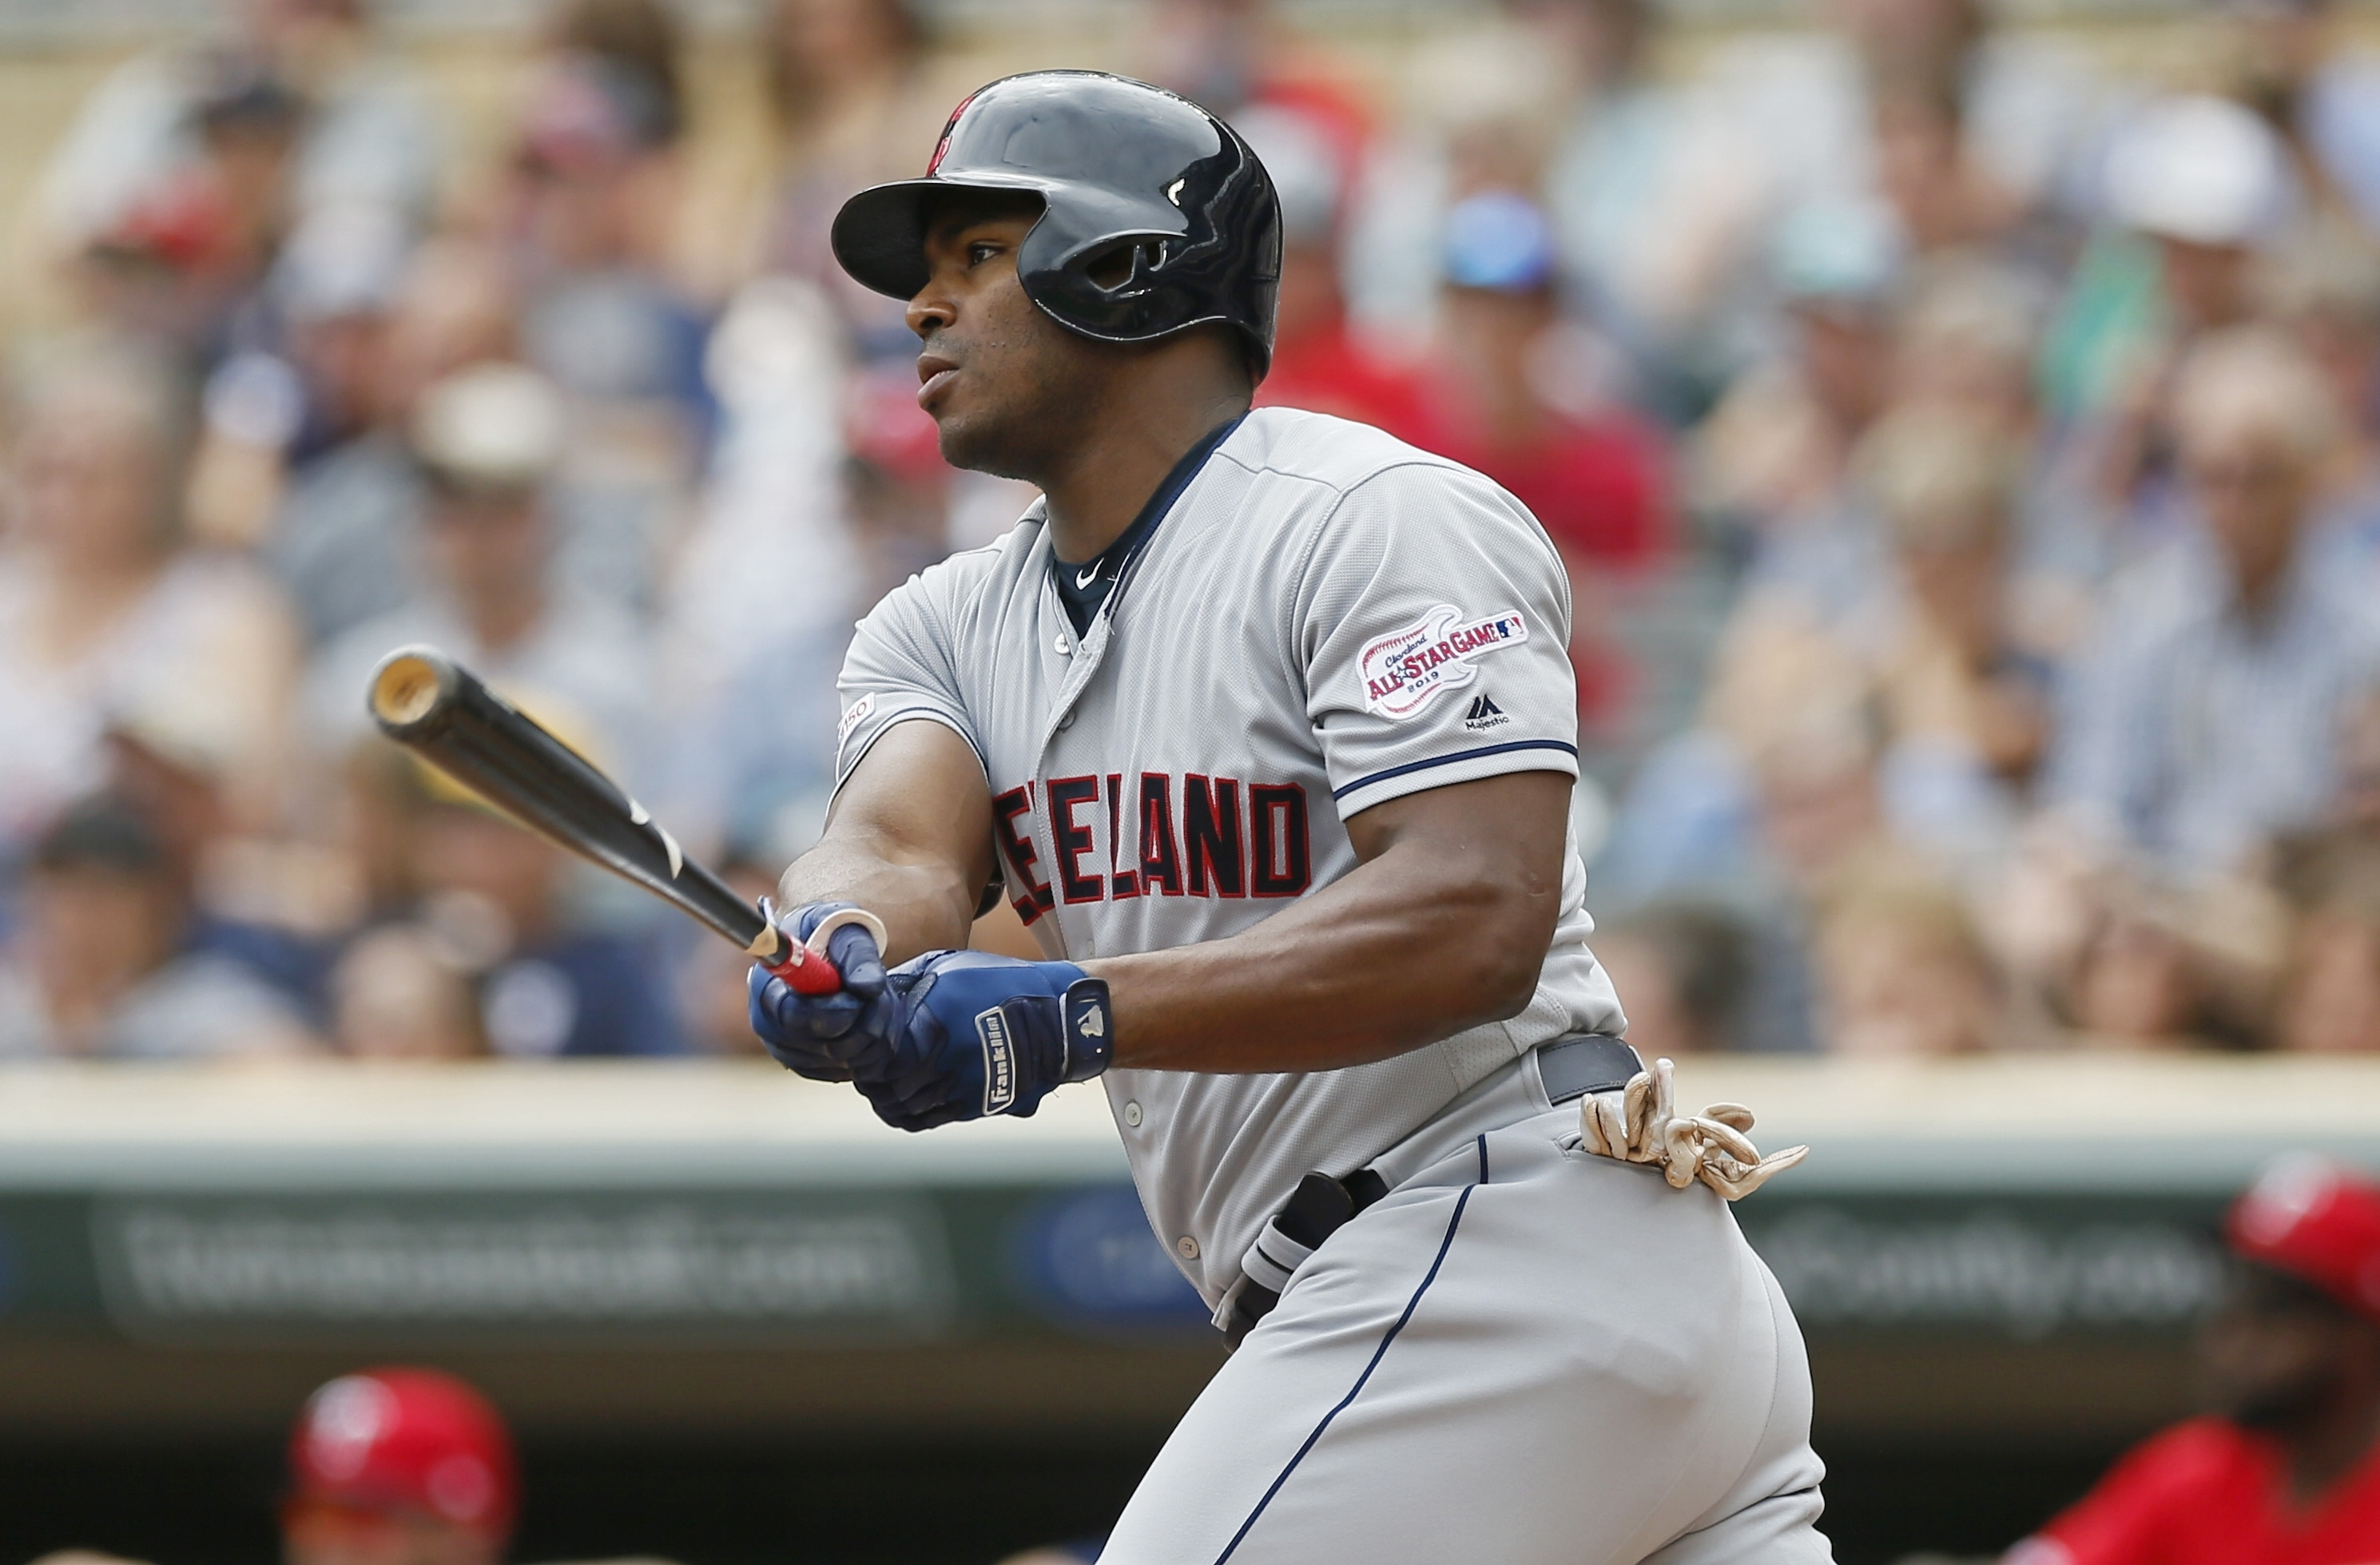 Why the Indians are a major threat to win the AL pennant